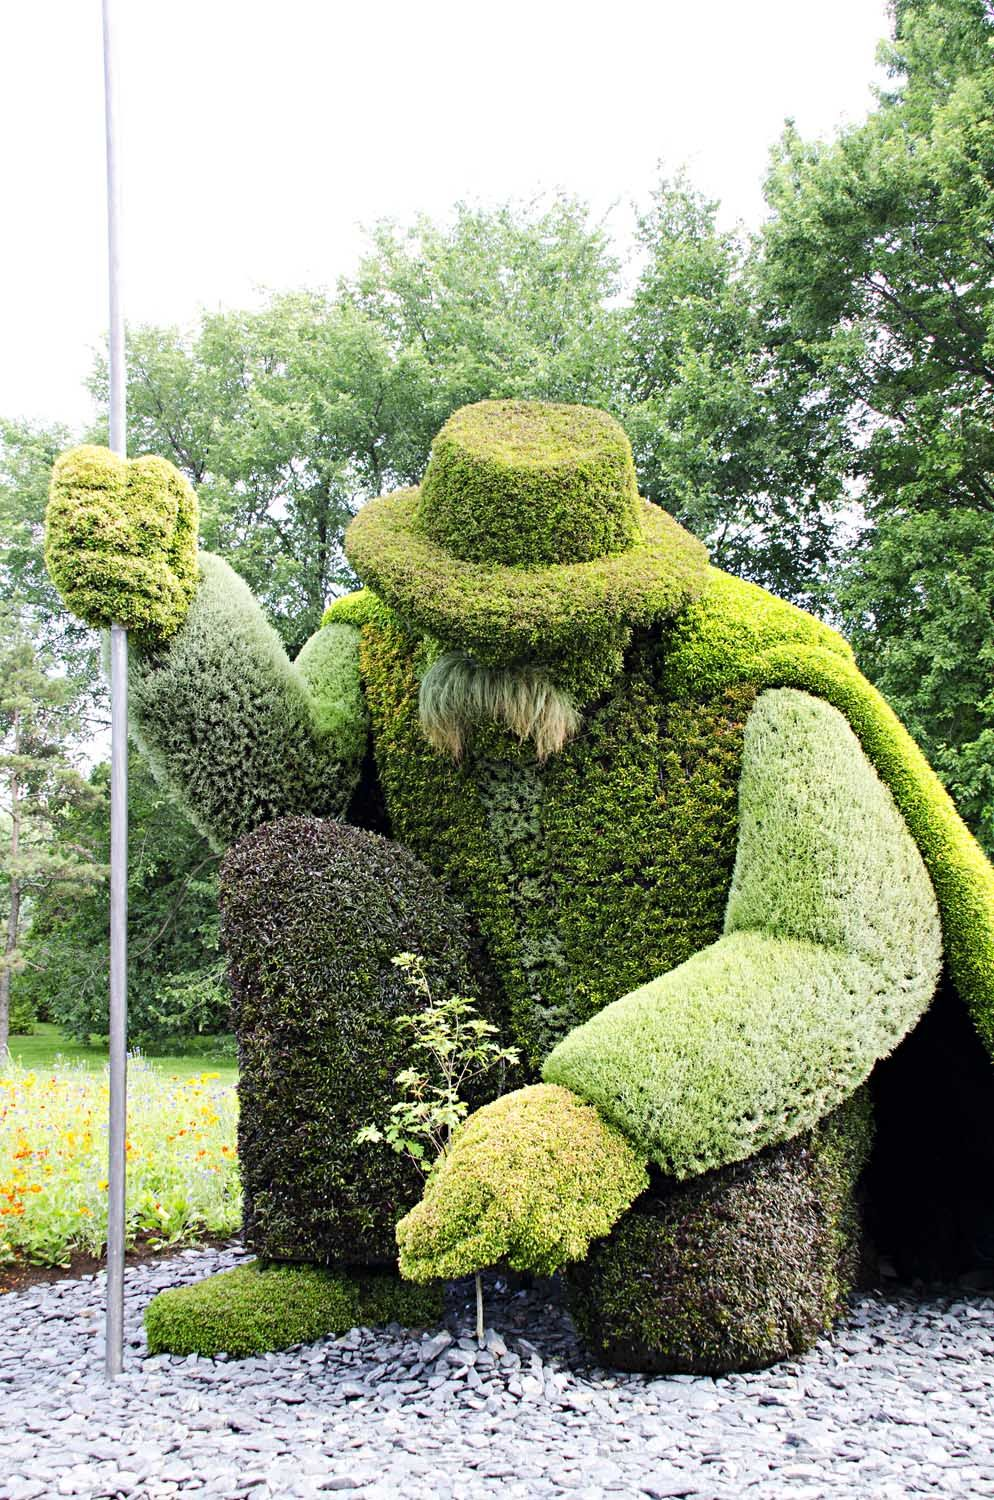 Epic topiary garden art hedge trimming topiary plants for Garden topiary trees